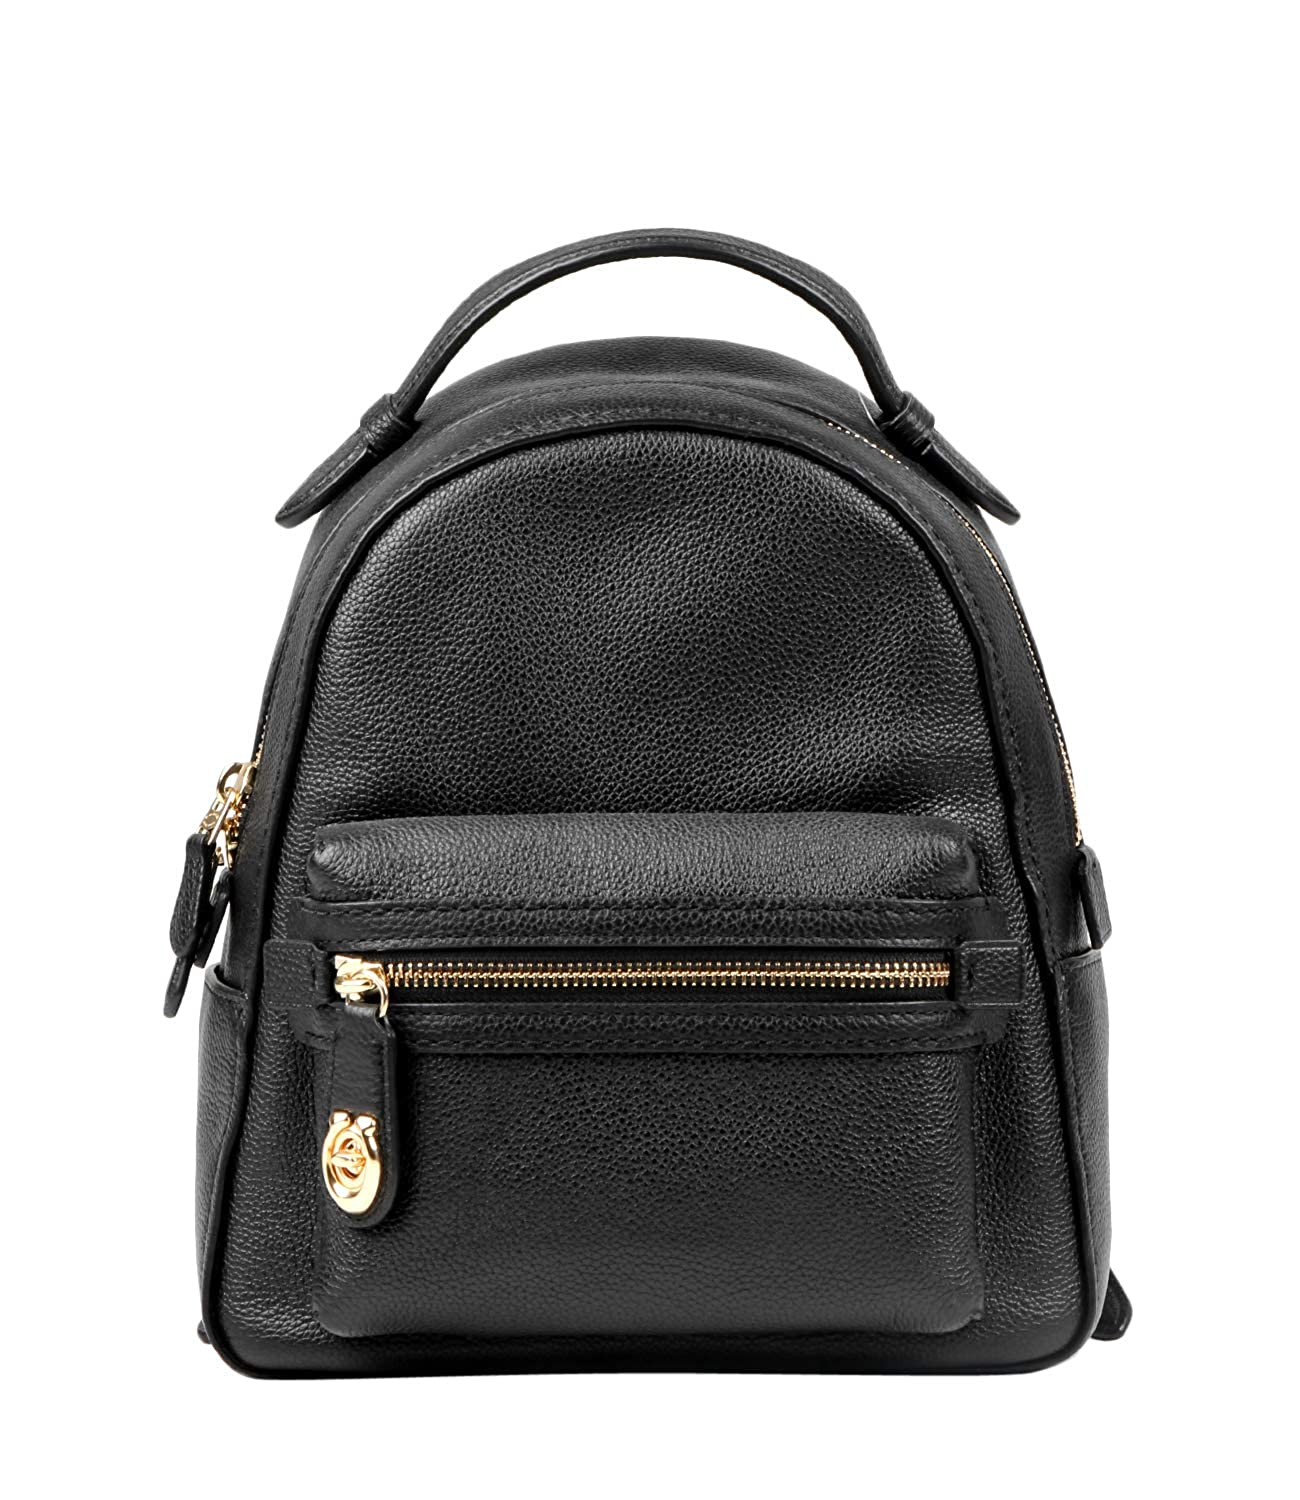 ff9cac0e8d77 Coach Campus 23 Pebbled Black Leather Backpack Black Leather  Amazon.co.uk   Shoes   Bags